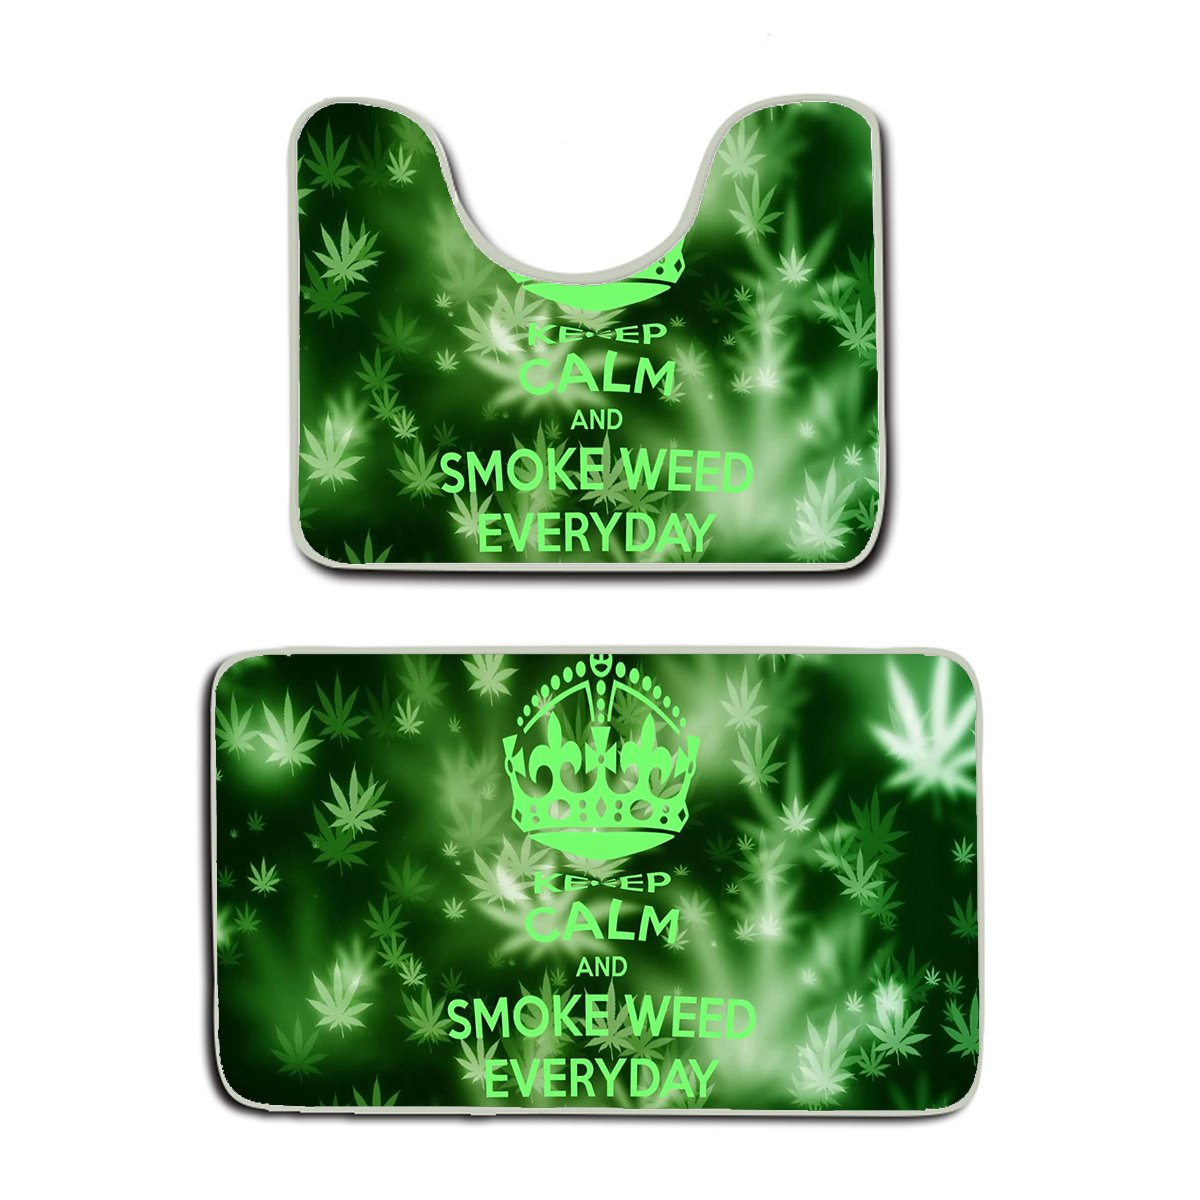 AMERICAN TANG Memory Foam 2 piece bathroom rug set - Keep Calm and Smoke Weed Everyday - Skidproof bath Mat And Toilet Seat Contour Cover rug by AMERICAN TANG